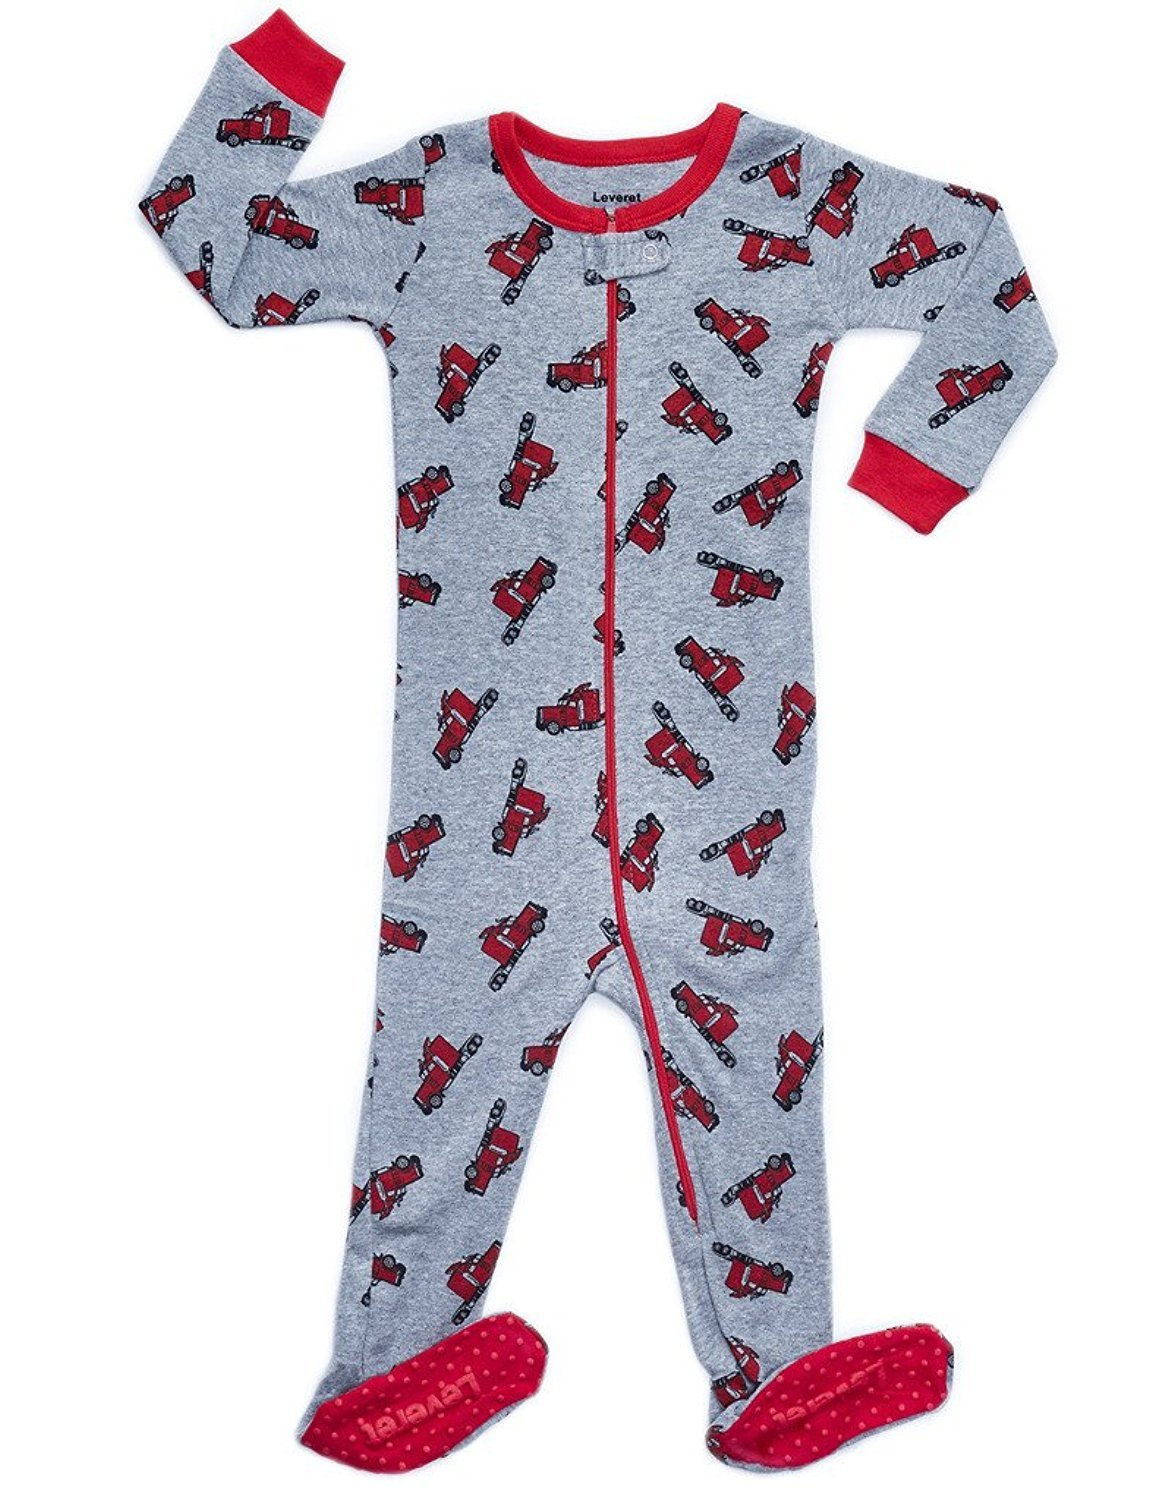 Leveret Trailer Footed Pajama Sleeper 100% Cotton 4 Years